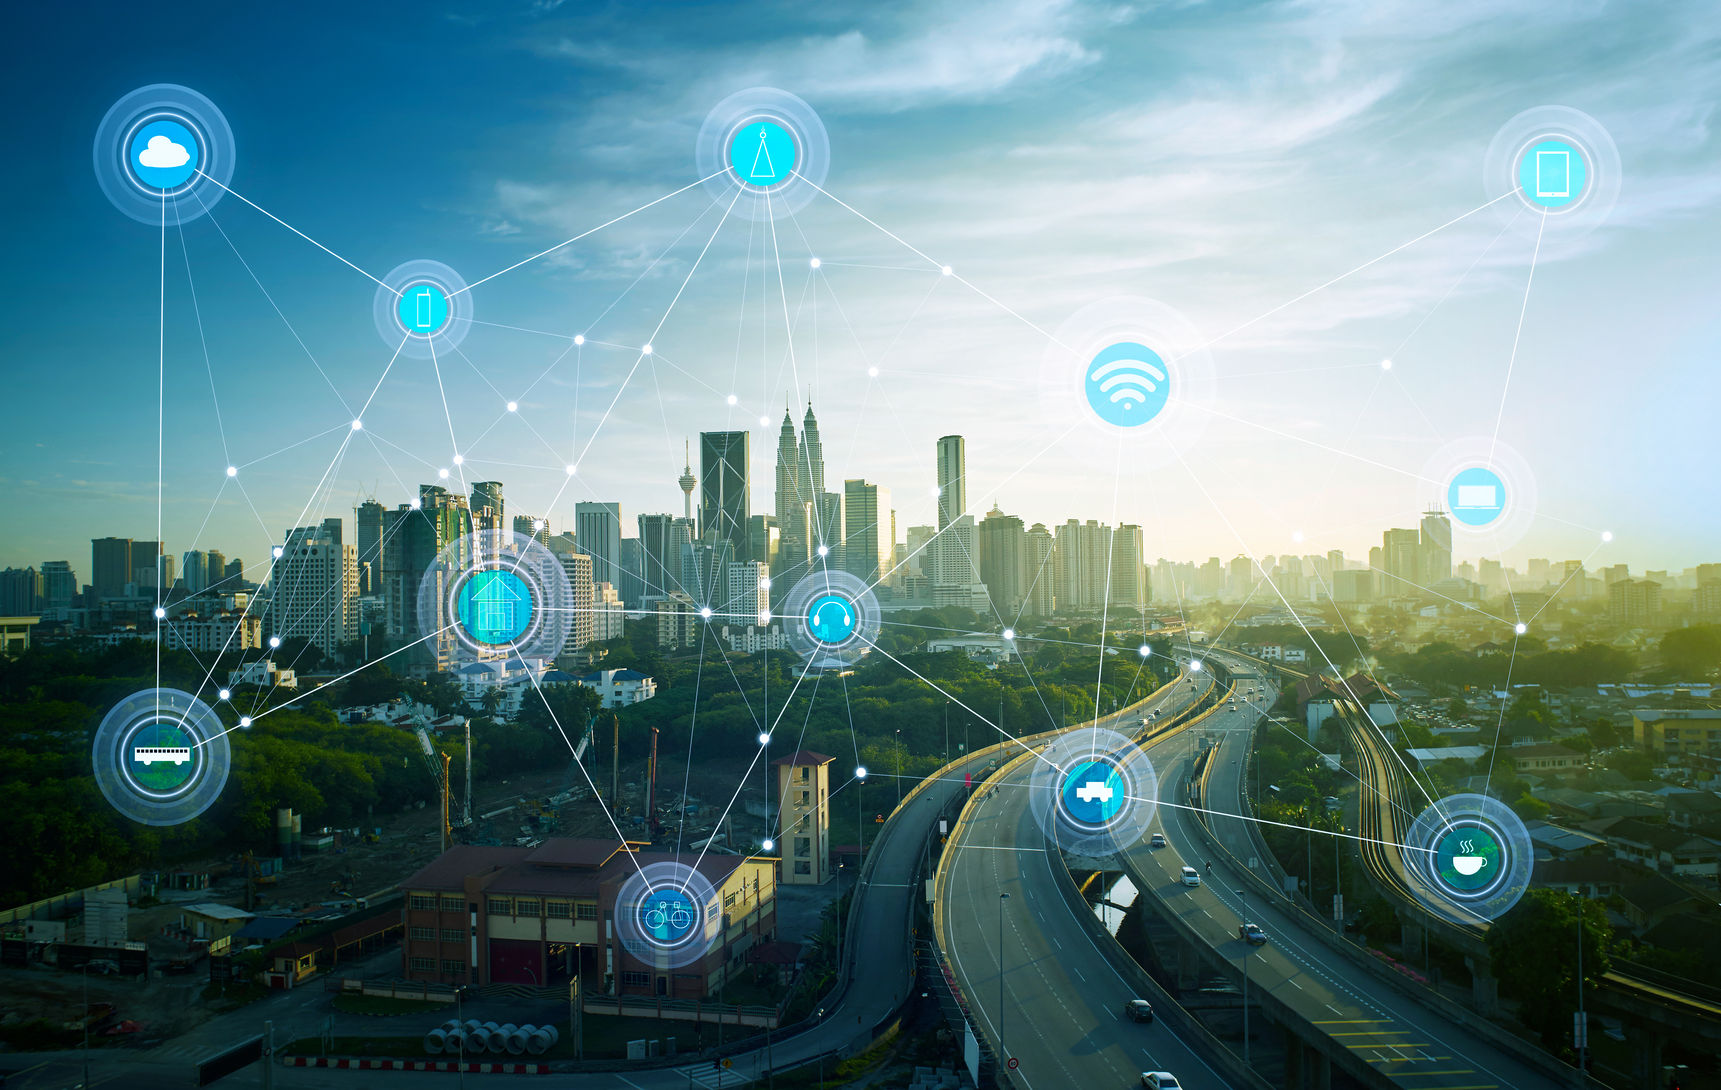 Boingo Wireless joins Qualcomm Smart Cities Accelerator Program